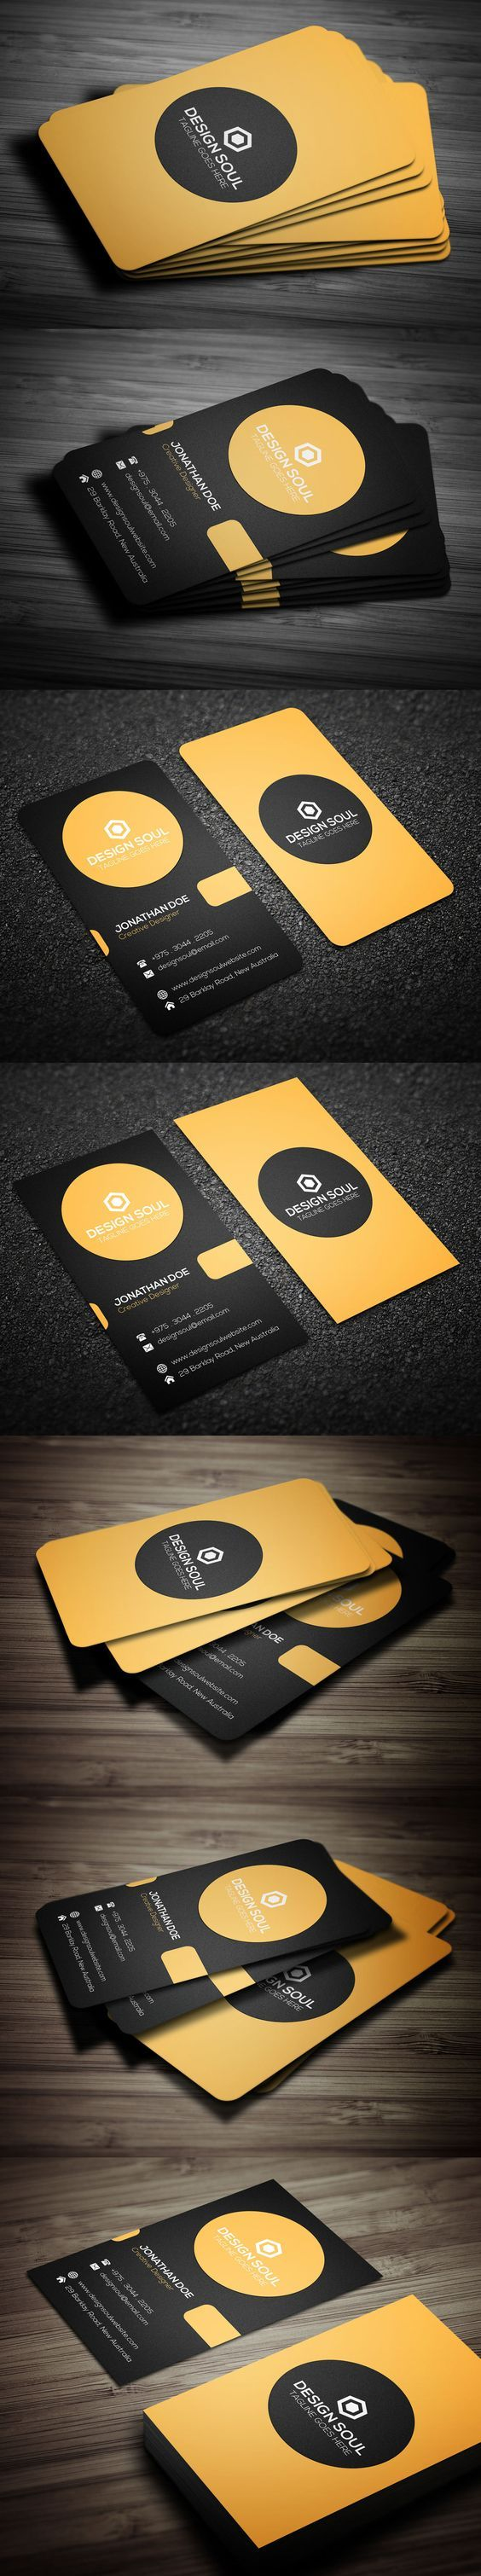 Corporate Business Card Design Sample (cto)  For V2 Media & Advertising products and services contact us! 🌐 www.v2media.ae 📧 info@v2media.ae ☎️ + 971 4 320 5511  📱 +971 50 797 2020 📱 +971 50 651 0355 📱 +971 56 265 9810 #print #dubai #cheap #affordable #quality #trading #banner #rollups  #adverstising #callingcard #businesscard #eco #calendar #DIY #cup